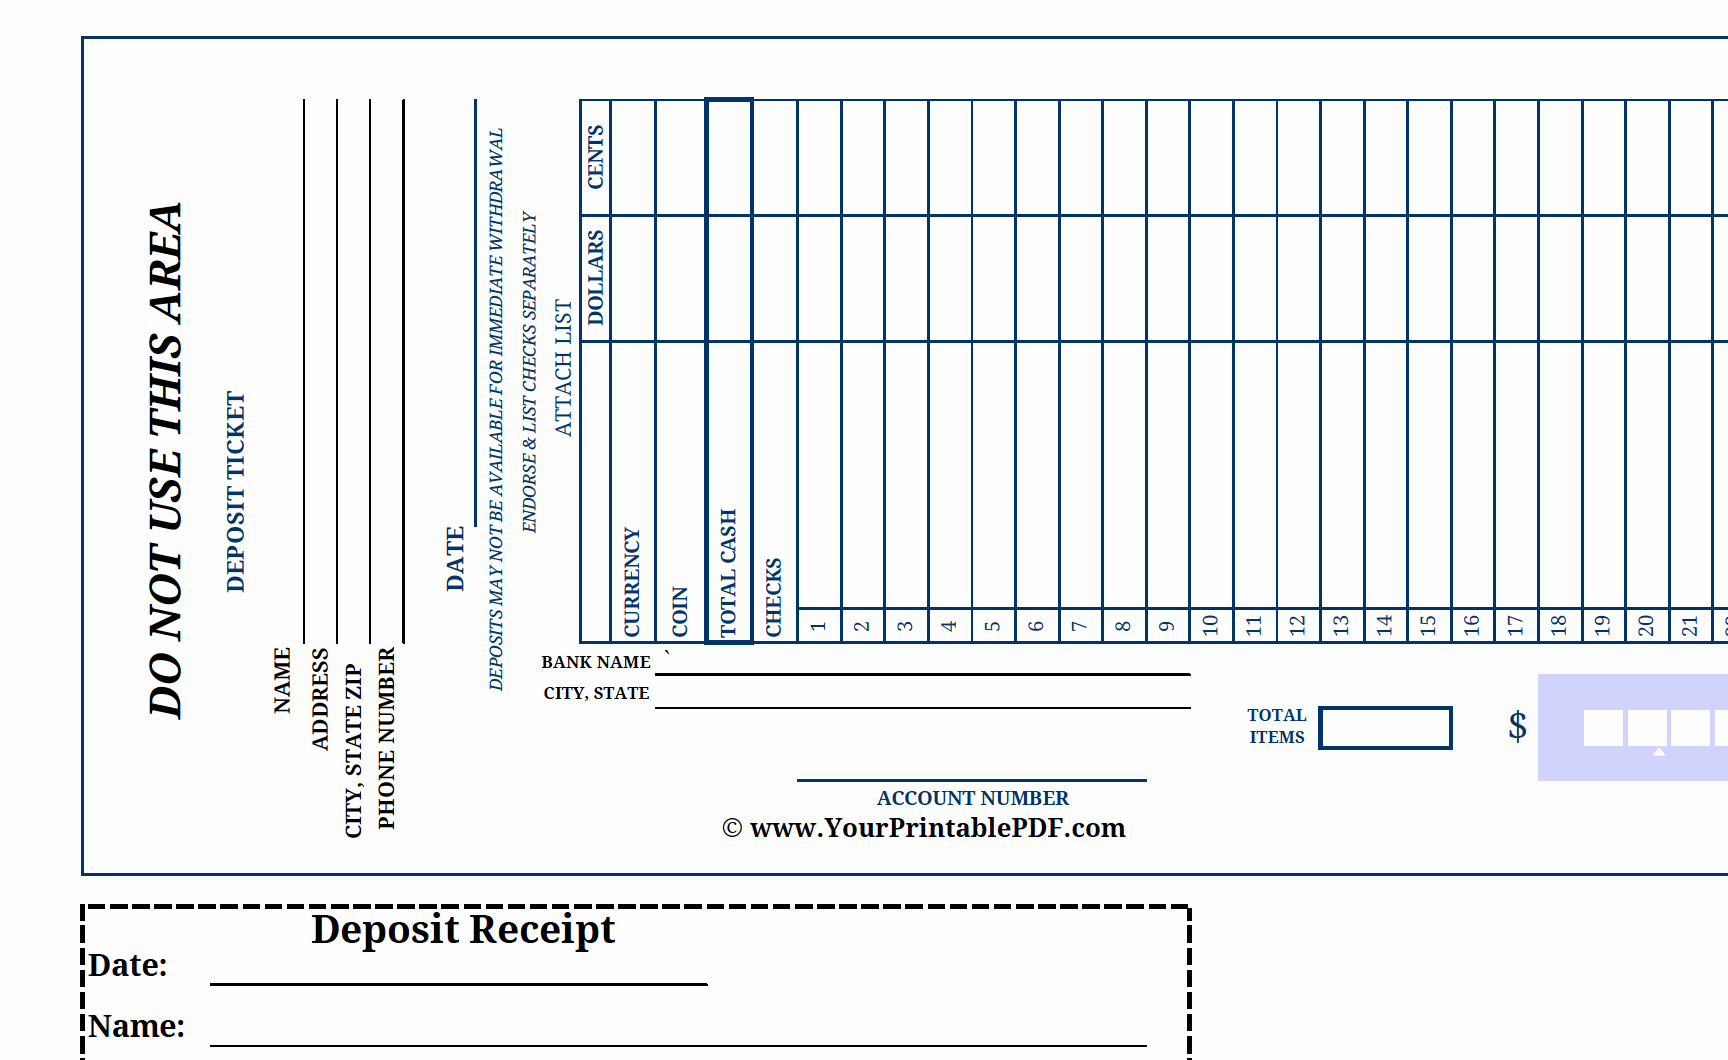 Free Printable Deposit Slips Template Best Of Printable Print Bank Deposit Slip there is Nothing